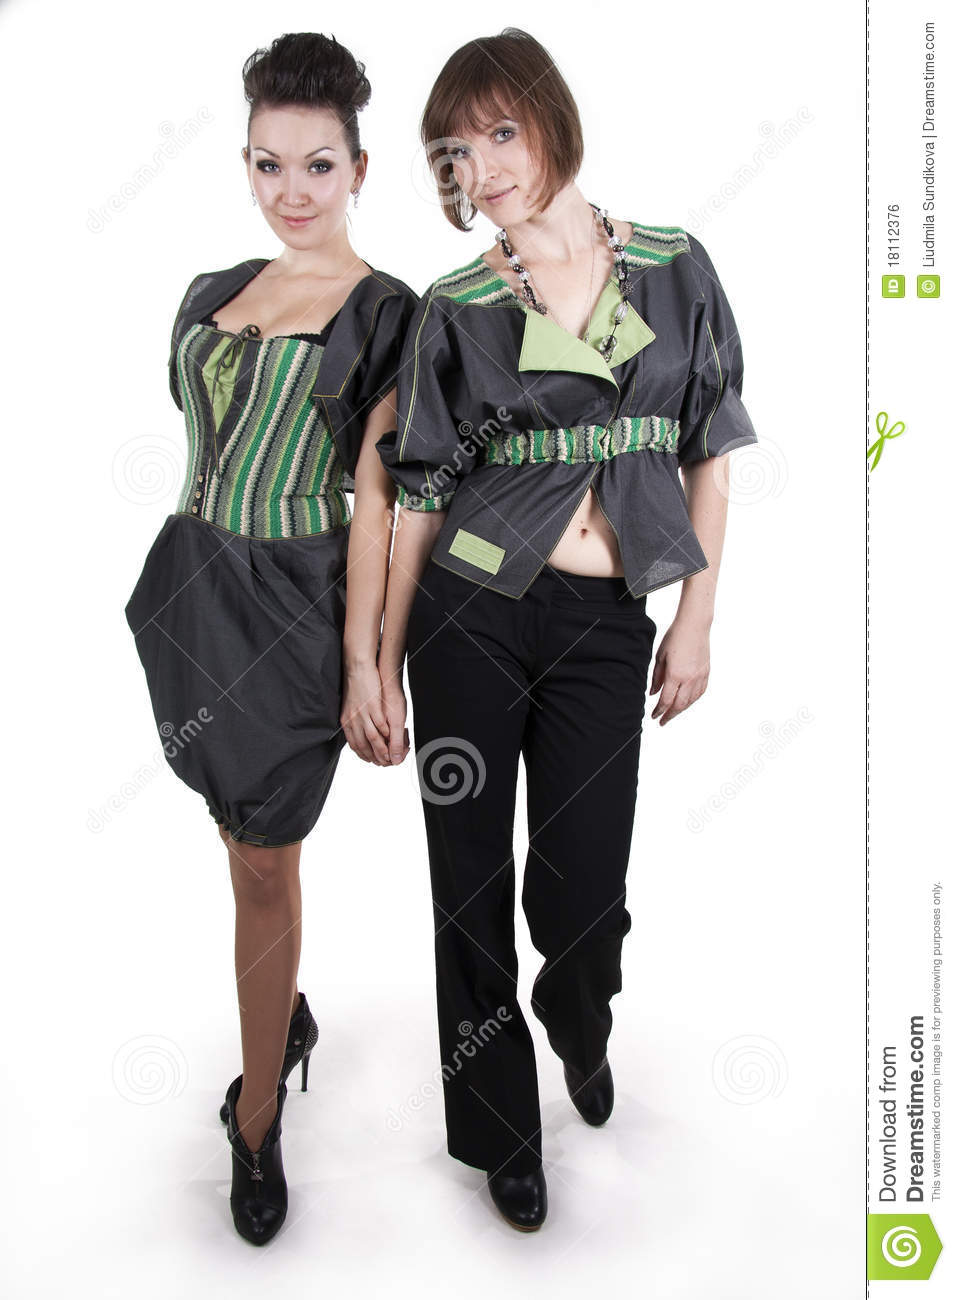 Fashion Trends Royalty Free Stock Image Image 18112376